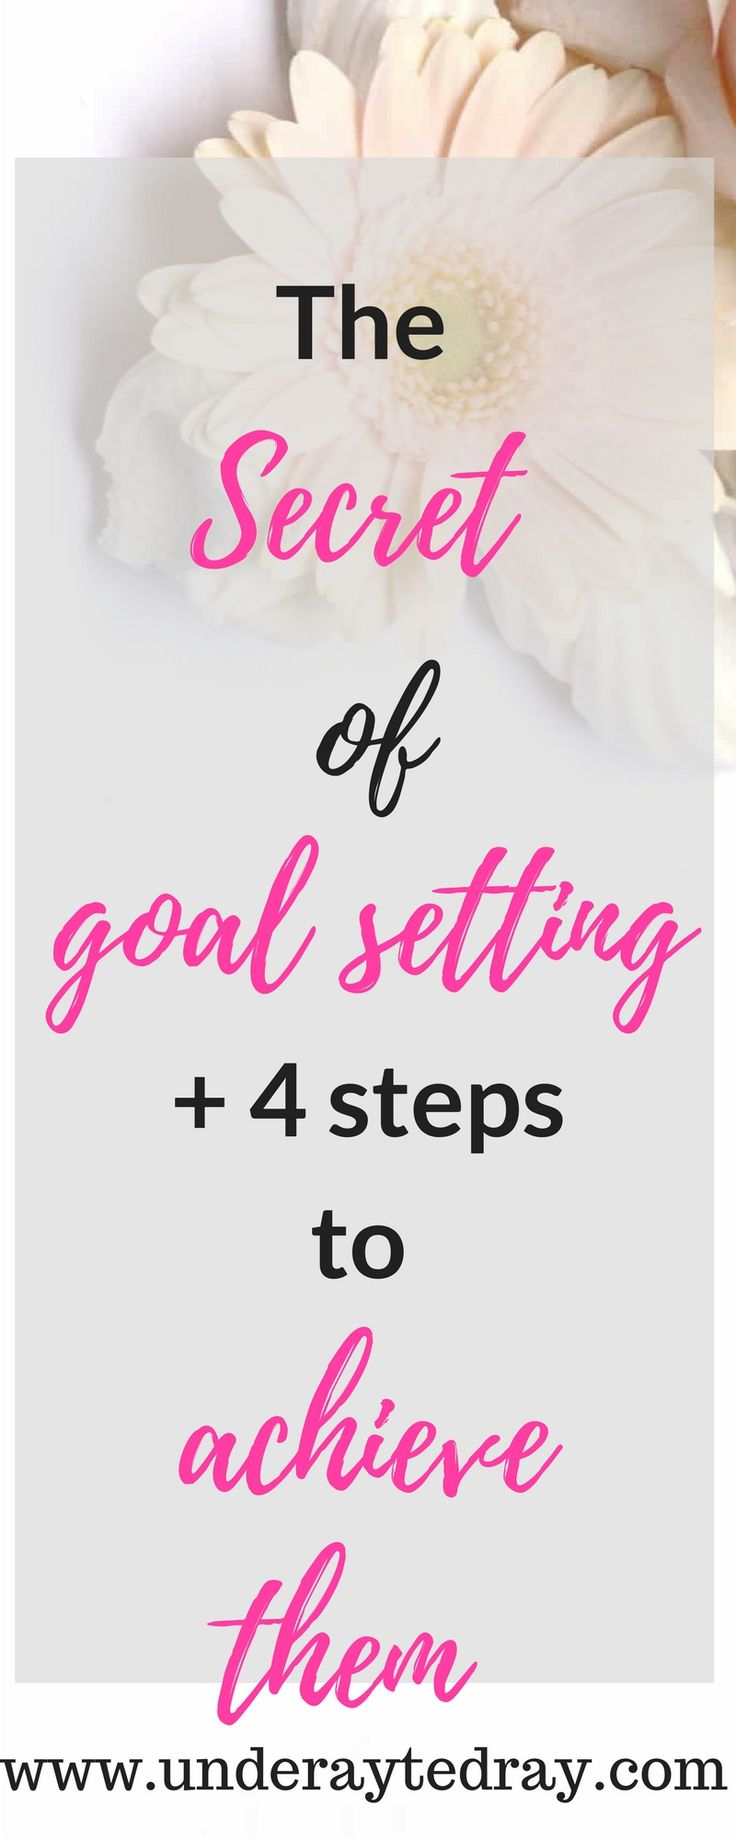 Easy step by step guide to making plans, decision making and execution. #goals  #makemoneyonline #goaldigger #goalsetting #onlinebusiness